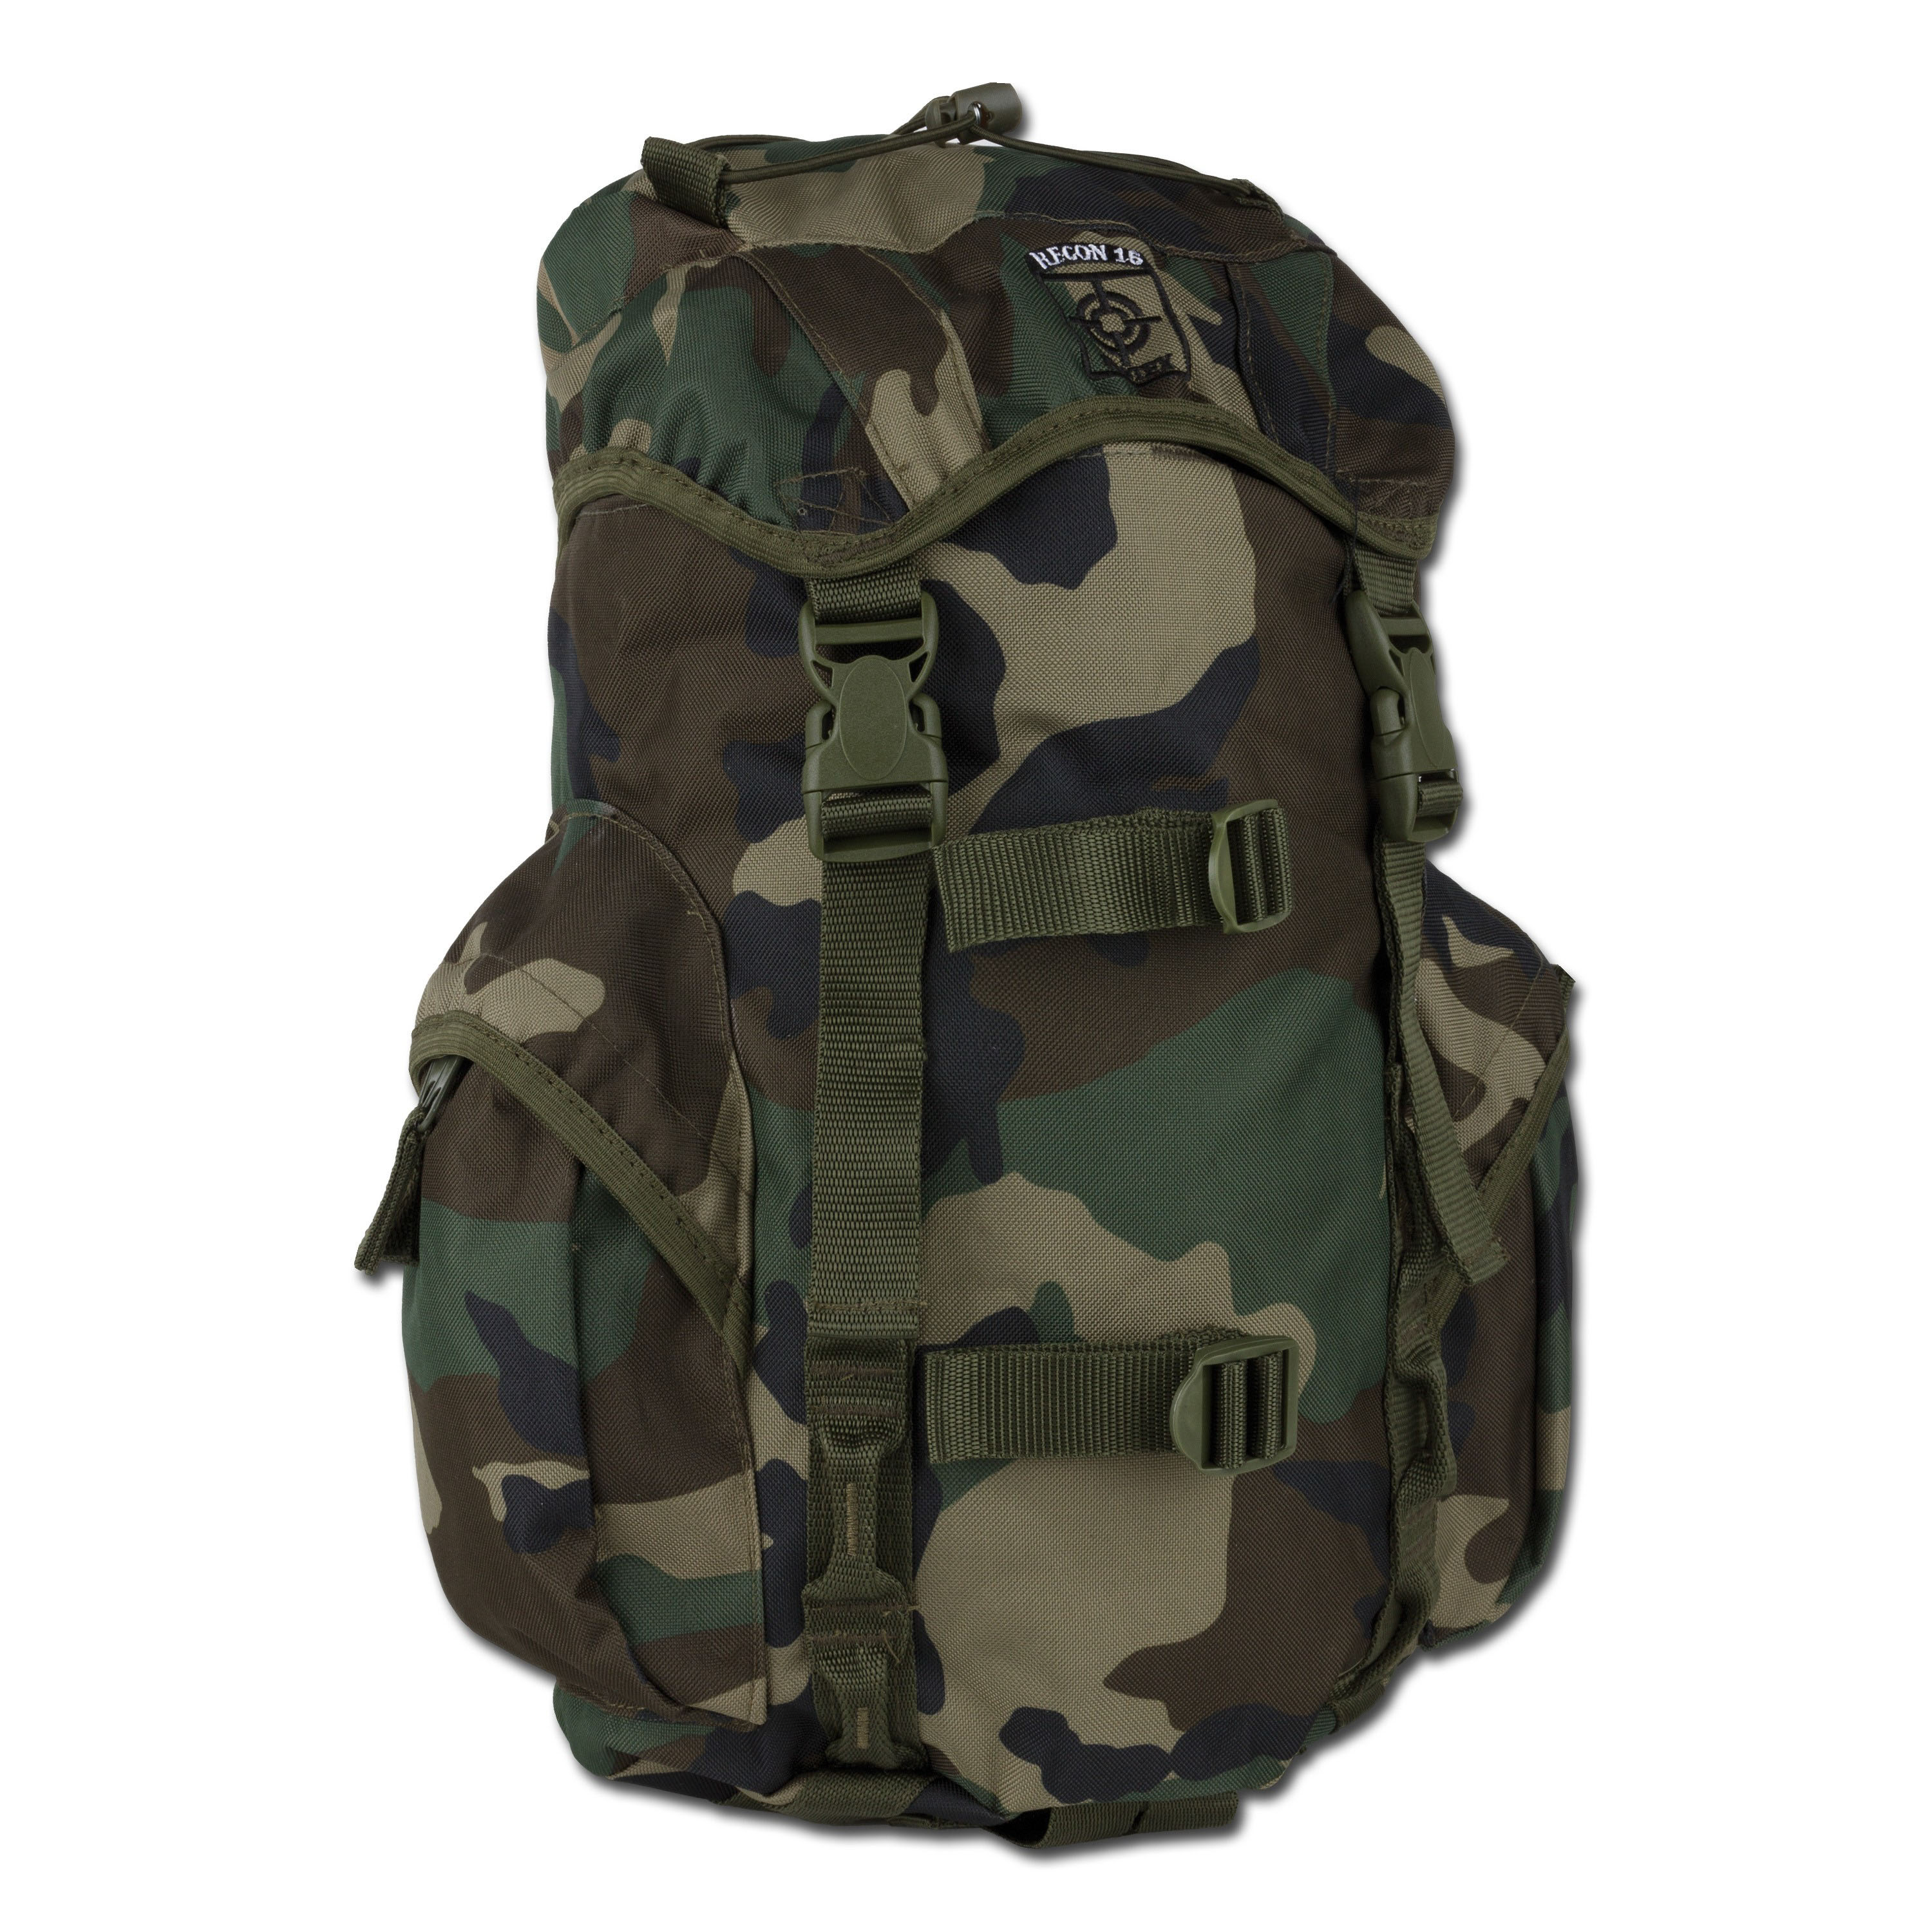 Sac à dos Recon woodland